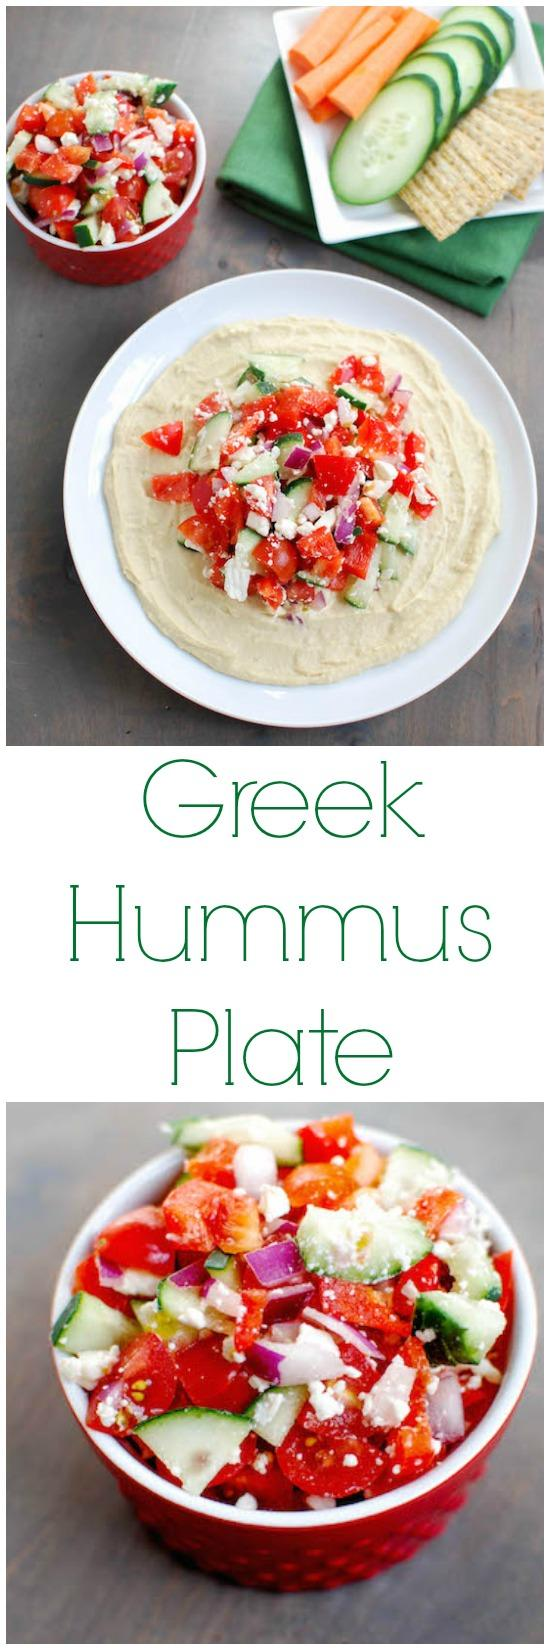 Hummus, veggies and feta in every bite makes this Greek Hummus Plate the perfect party appetizer or afternoon snack.